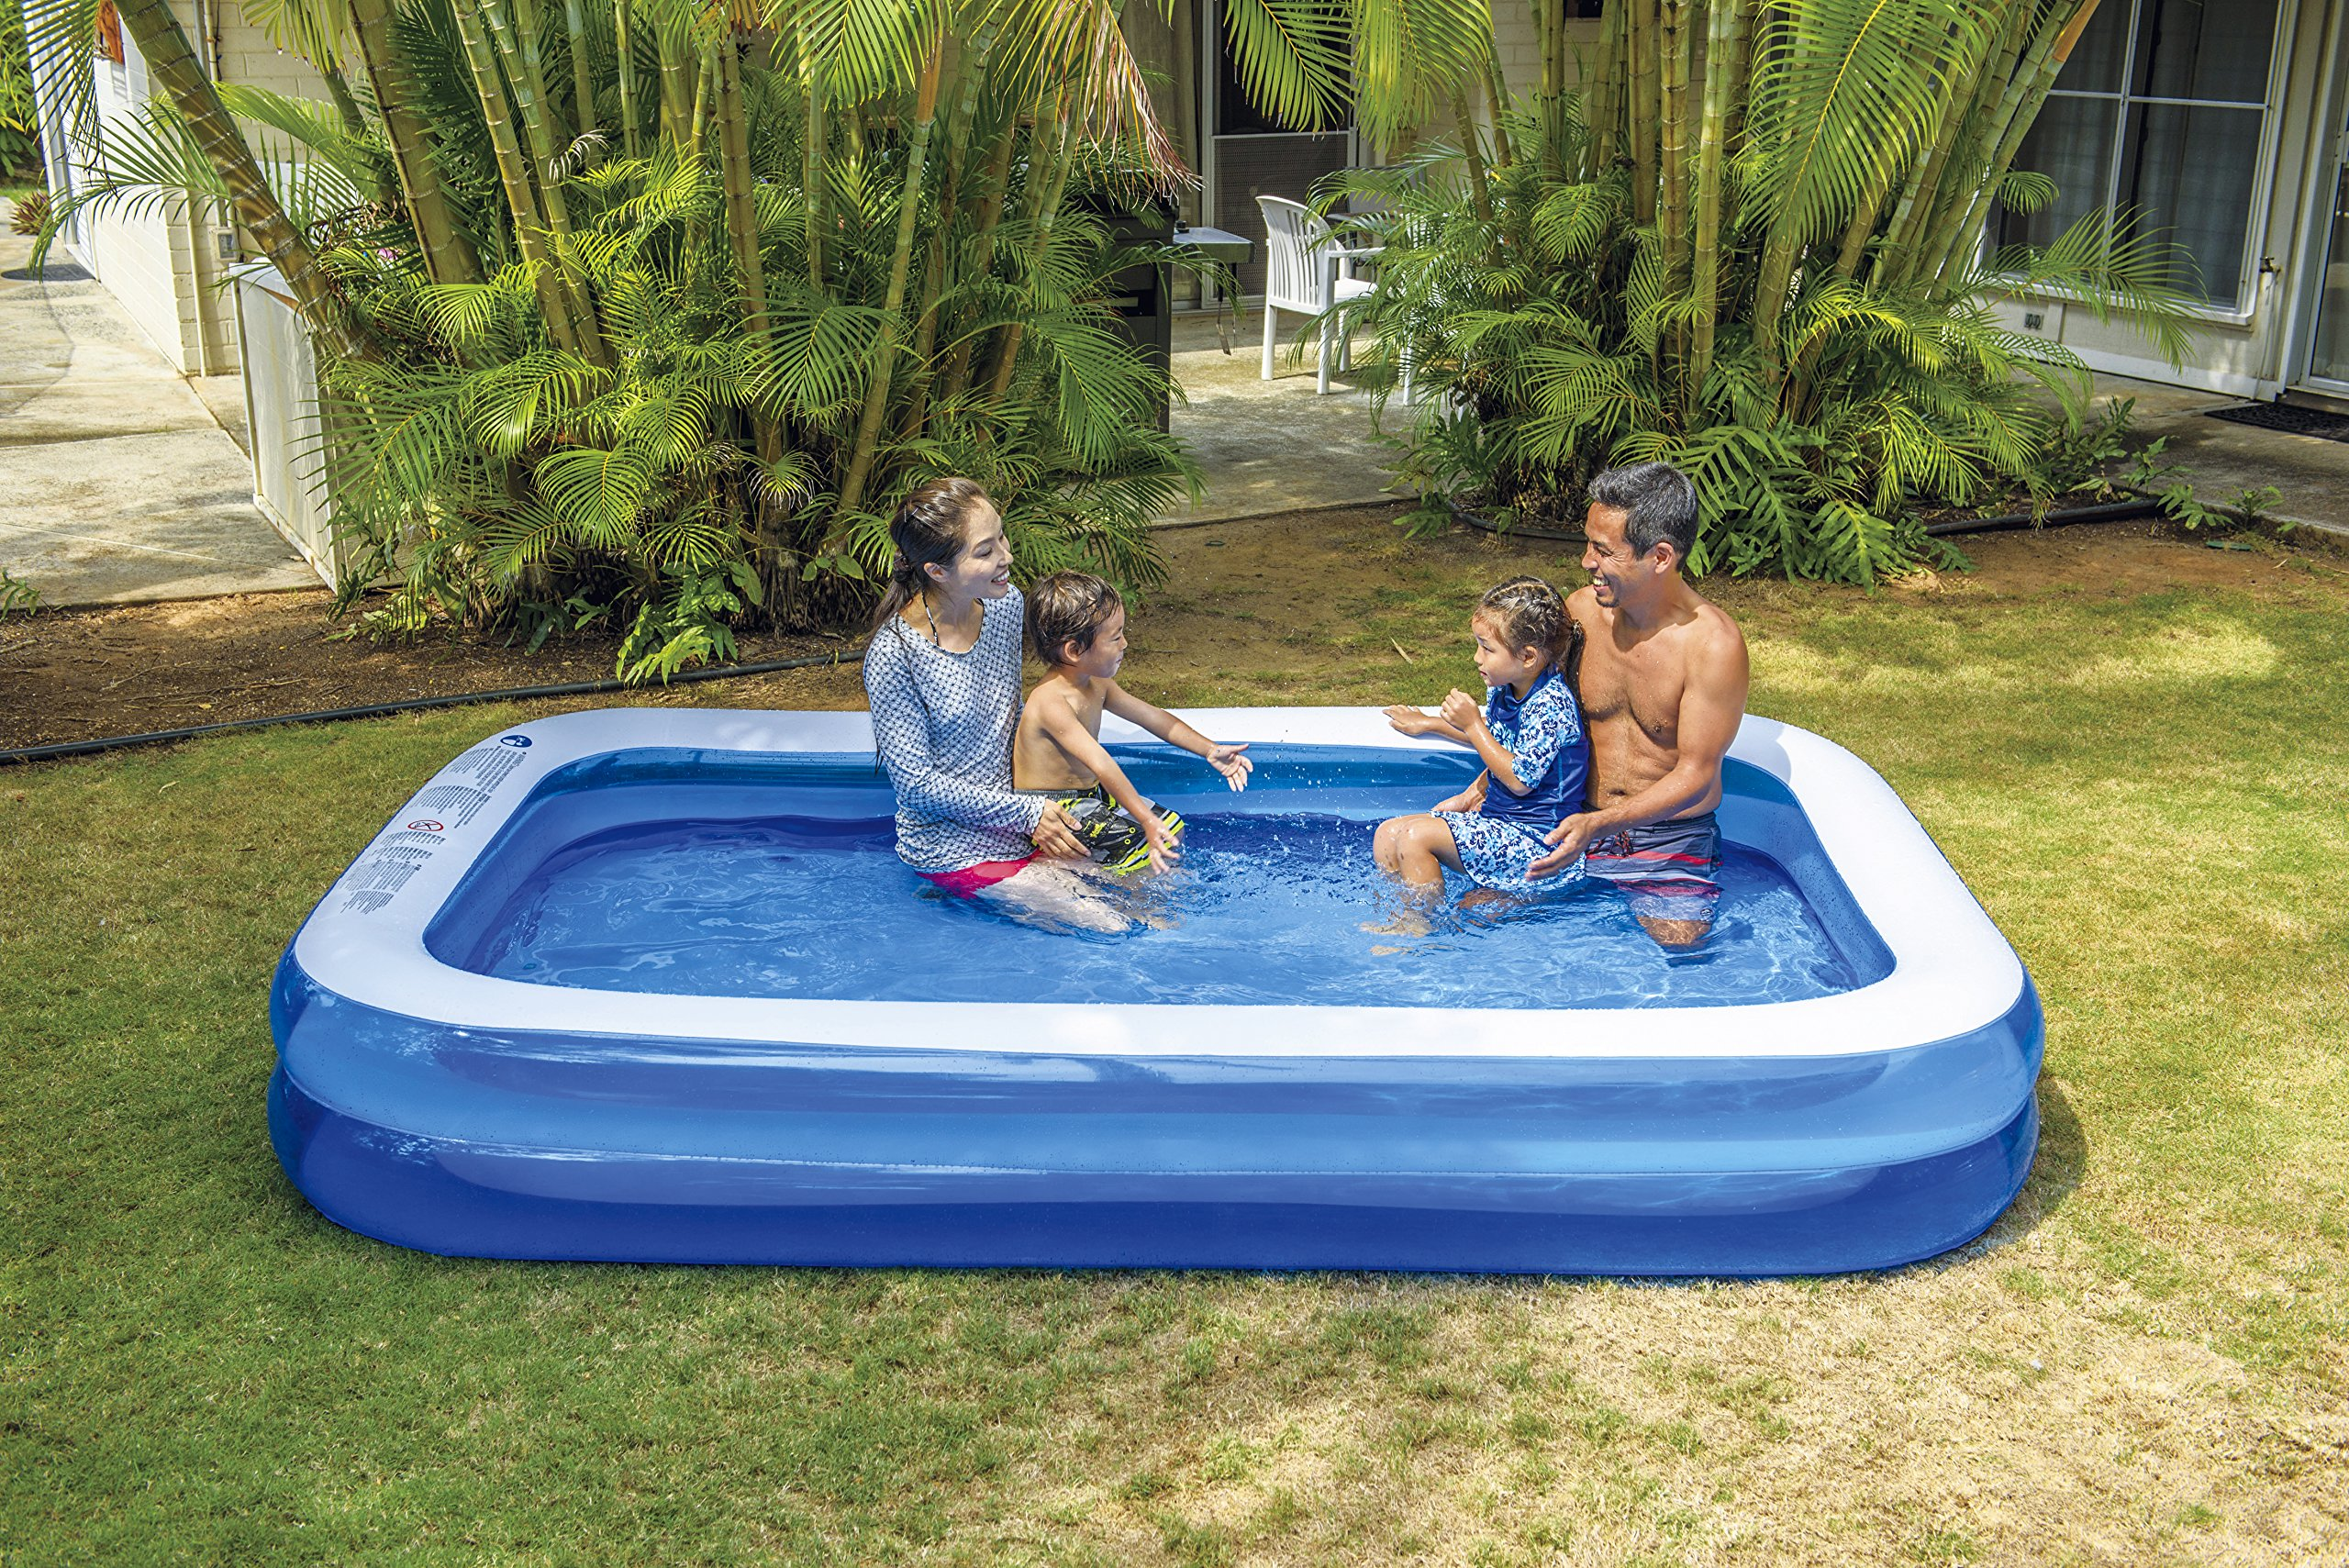 Giant Inflatable Kiddie Pool - Family and Kids Inflatable Rectangular Pool - 10 Feet Long (120'' X 72'' X 20'')